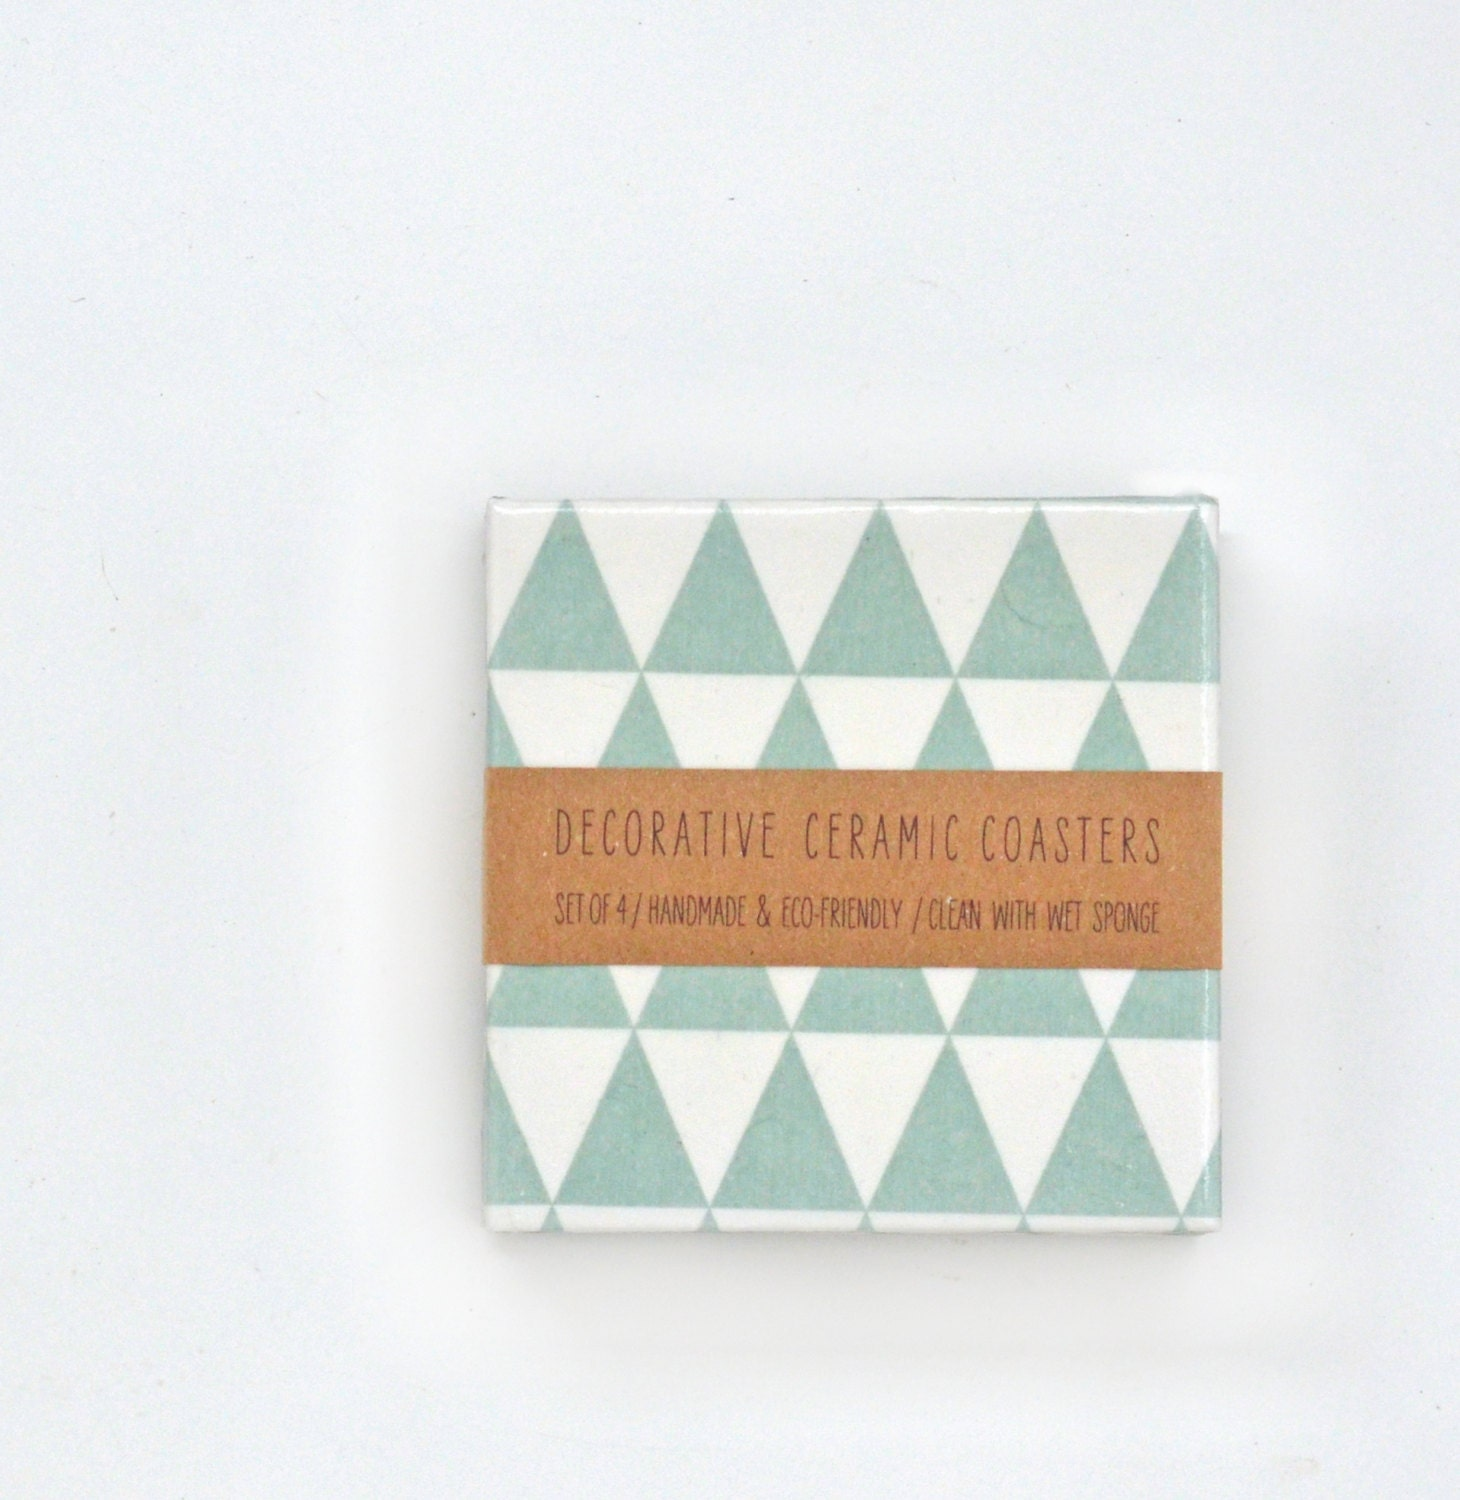 Tile Coasters Pale Mint Triangles Ceramic Coasters Pastel Modern Geometric Re-purposed, set of 4 - Tilissimo